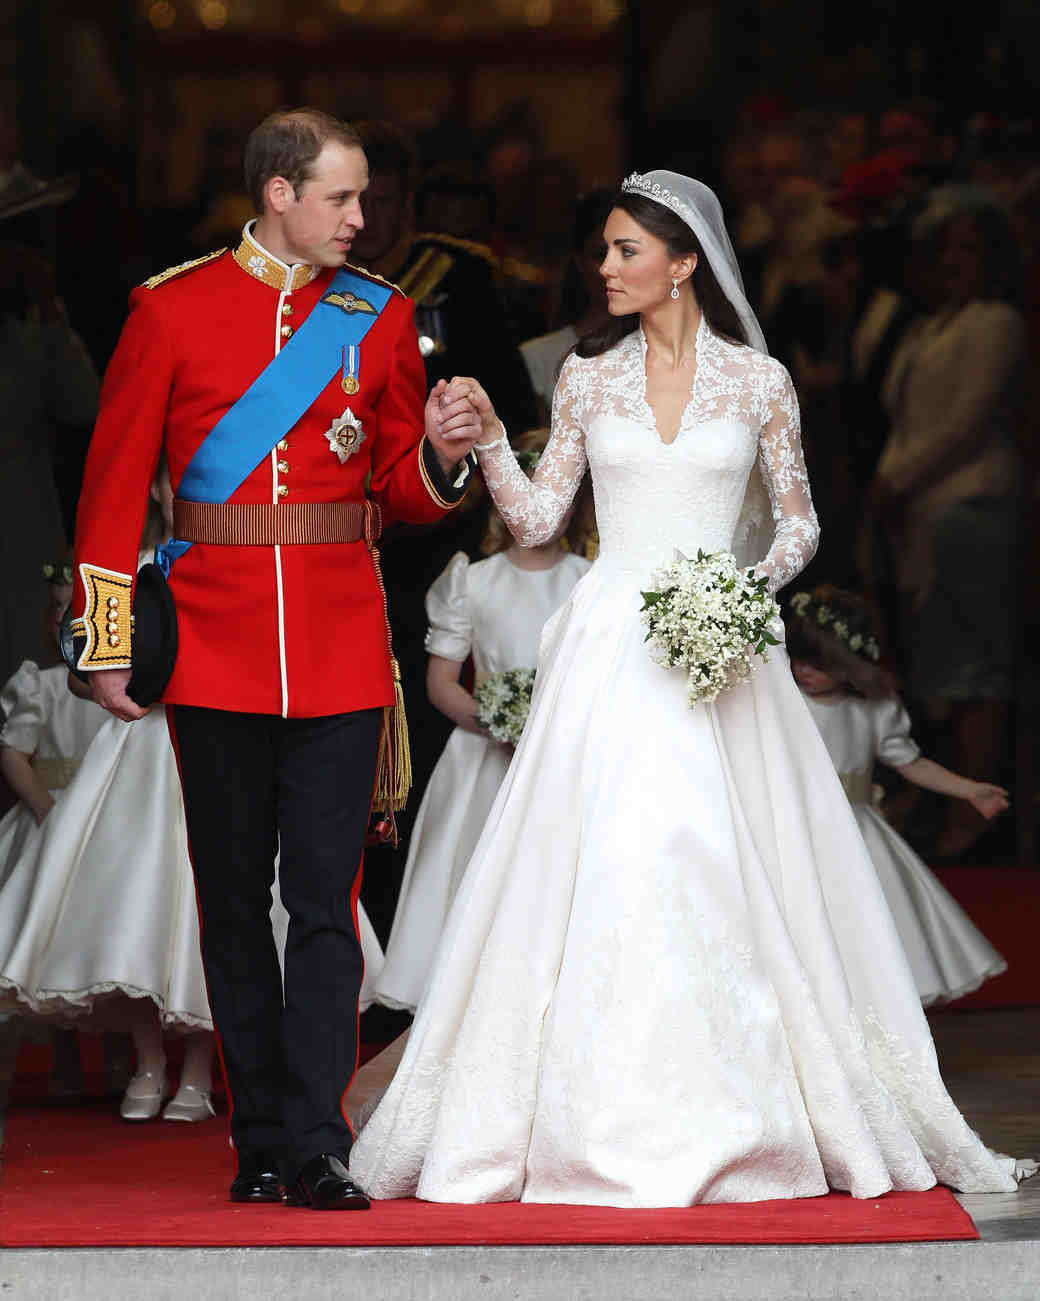 royal-wedding-dress-kate-middleton-113266472-1115.jpg